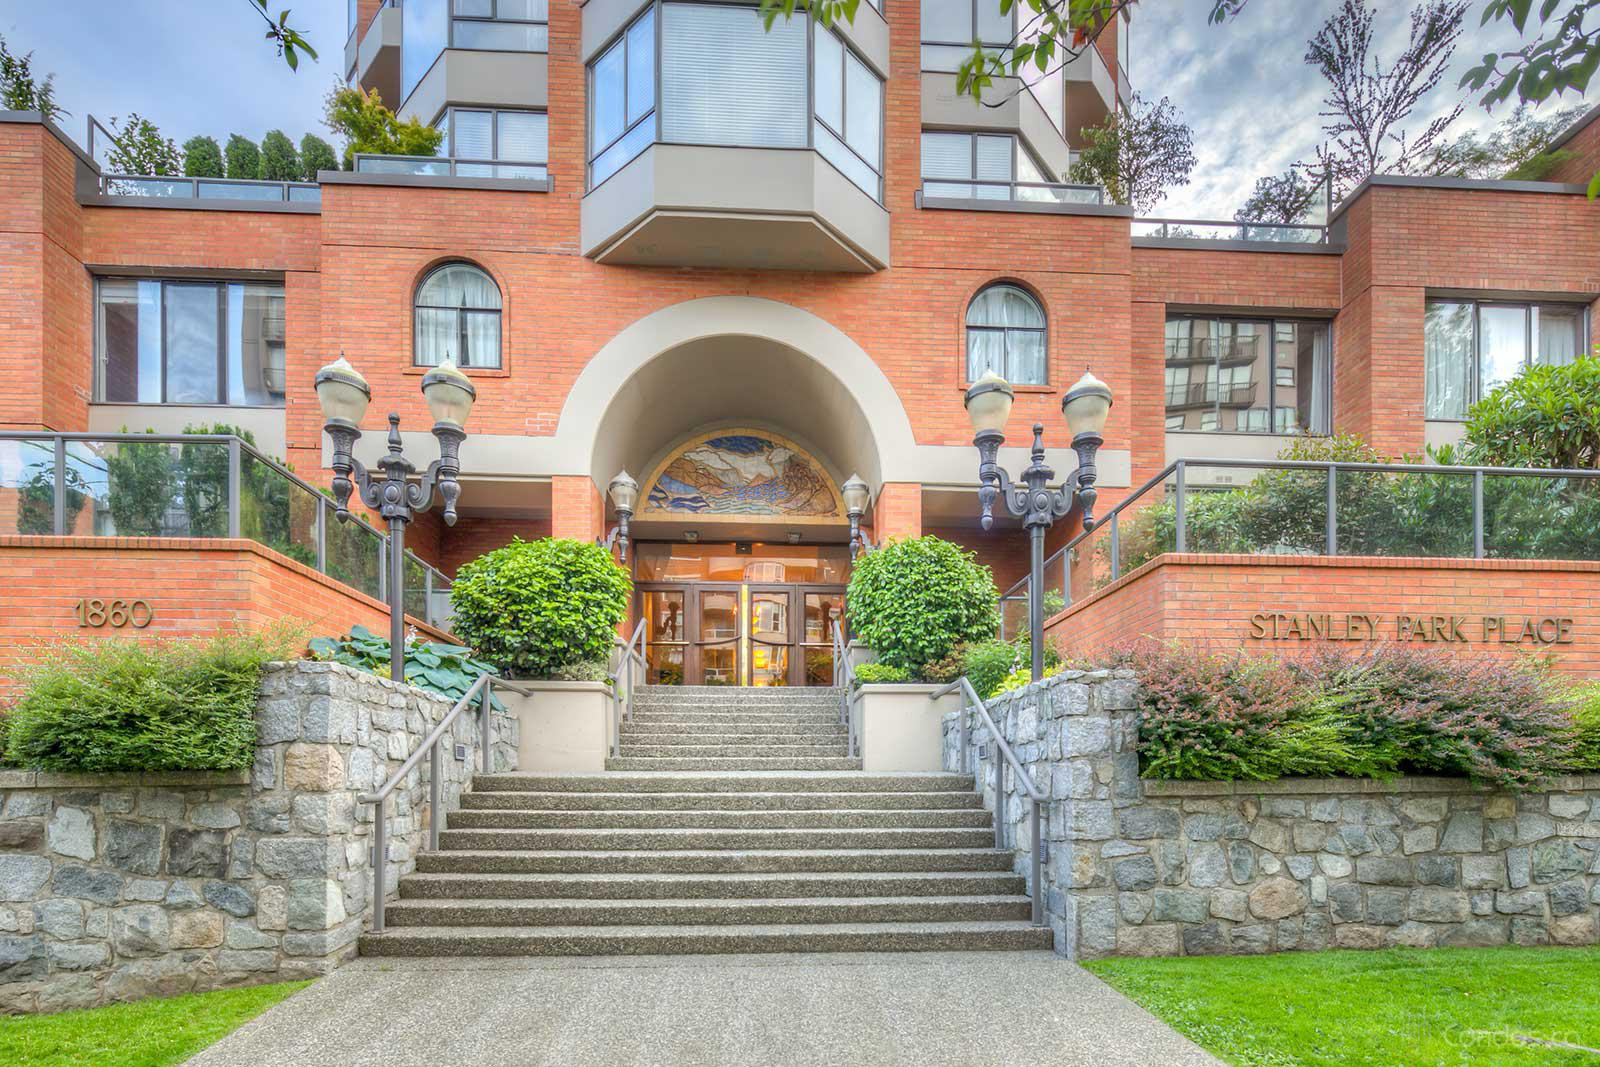 Stanley Park Place at 1860 Robson St, Vancouver 0